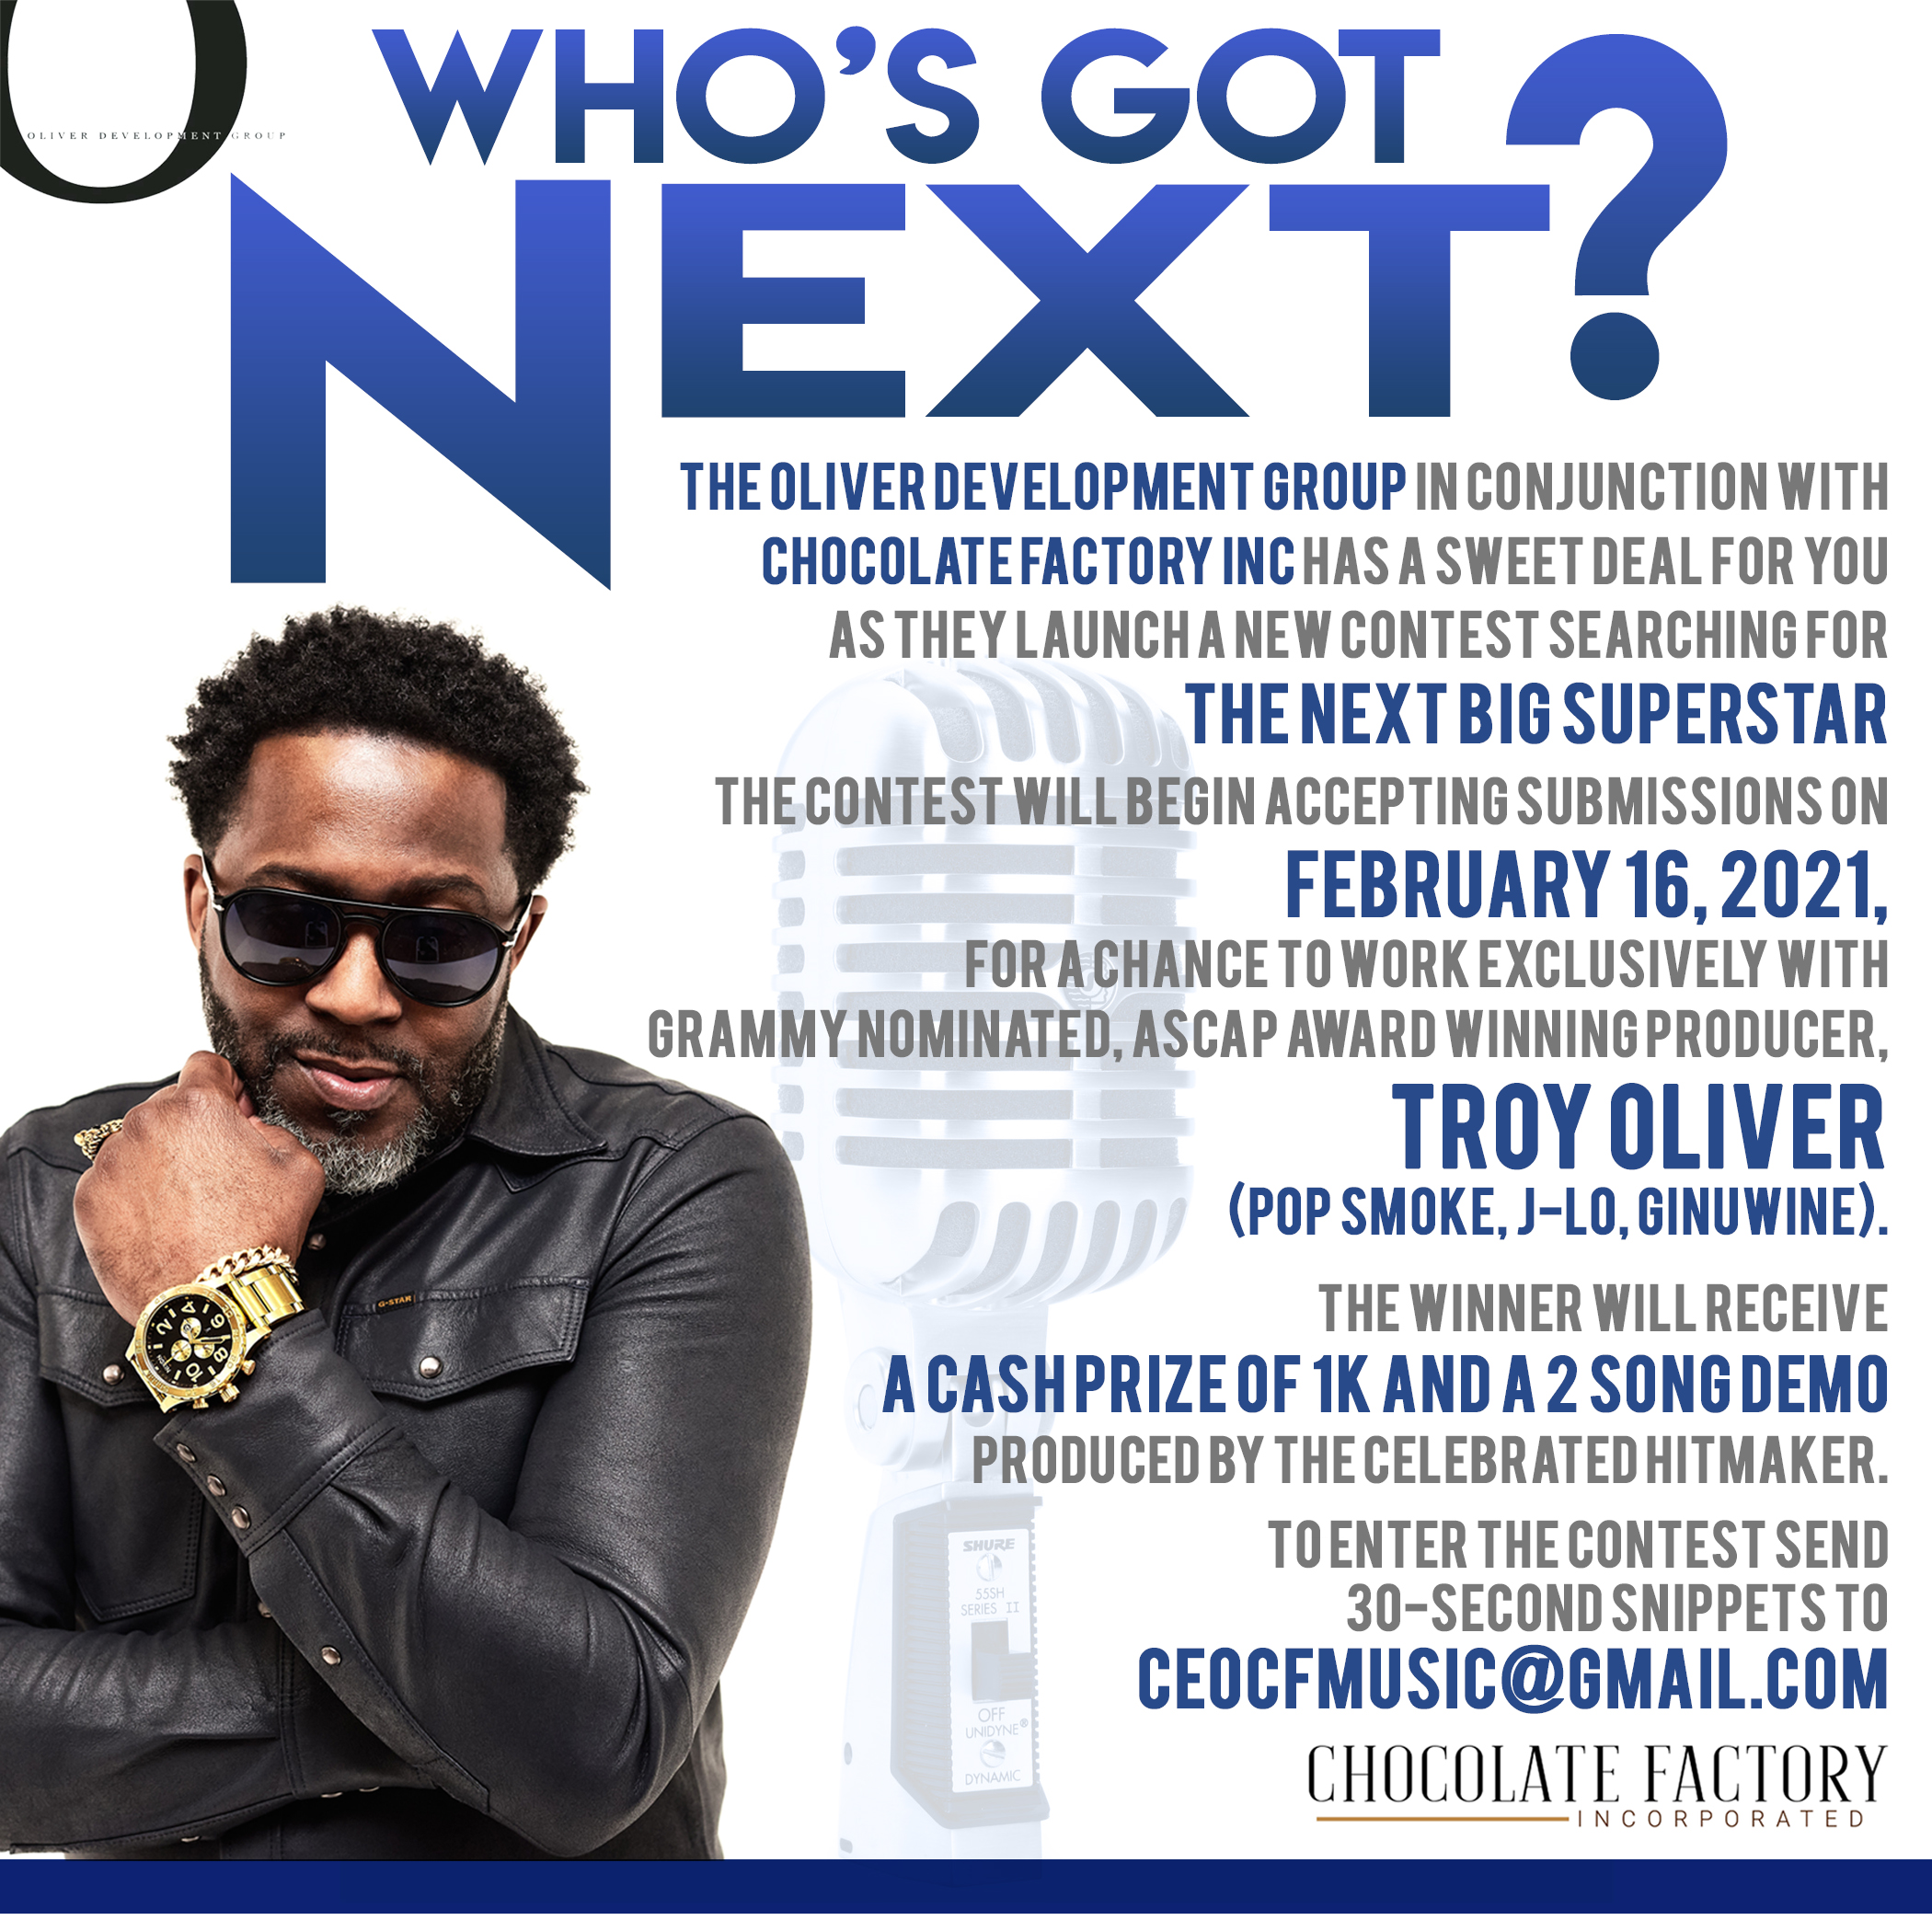 The Oliver Development Group in conjunction with Chocolate Factory Inc. launch contest looking for the next R&B Sensation